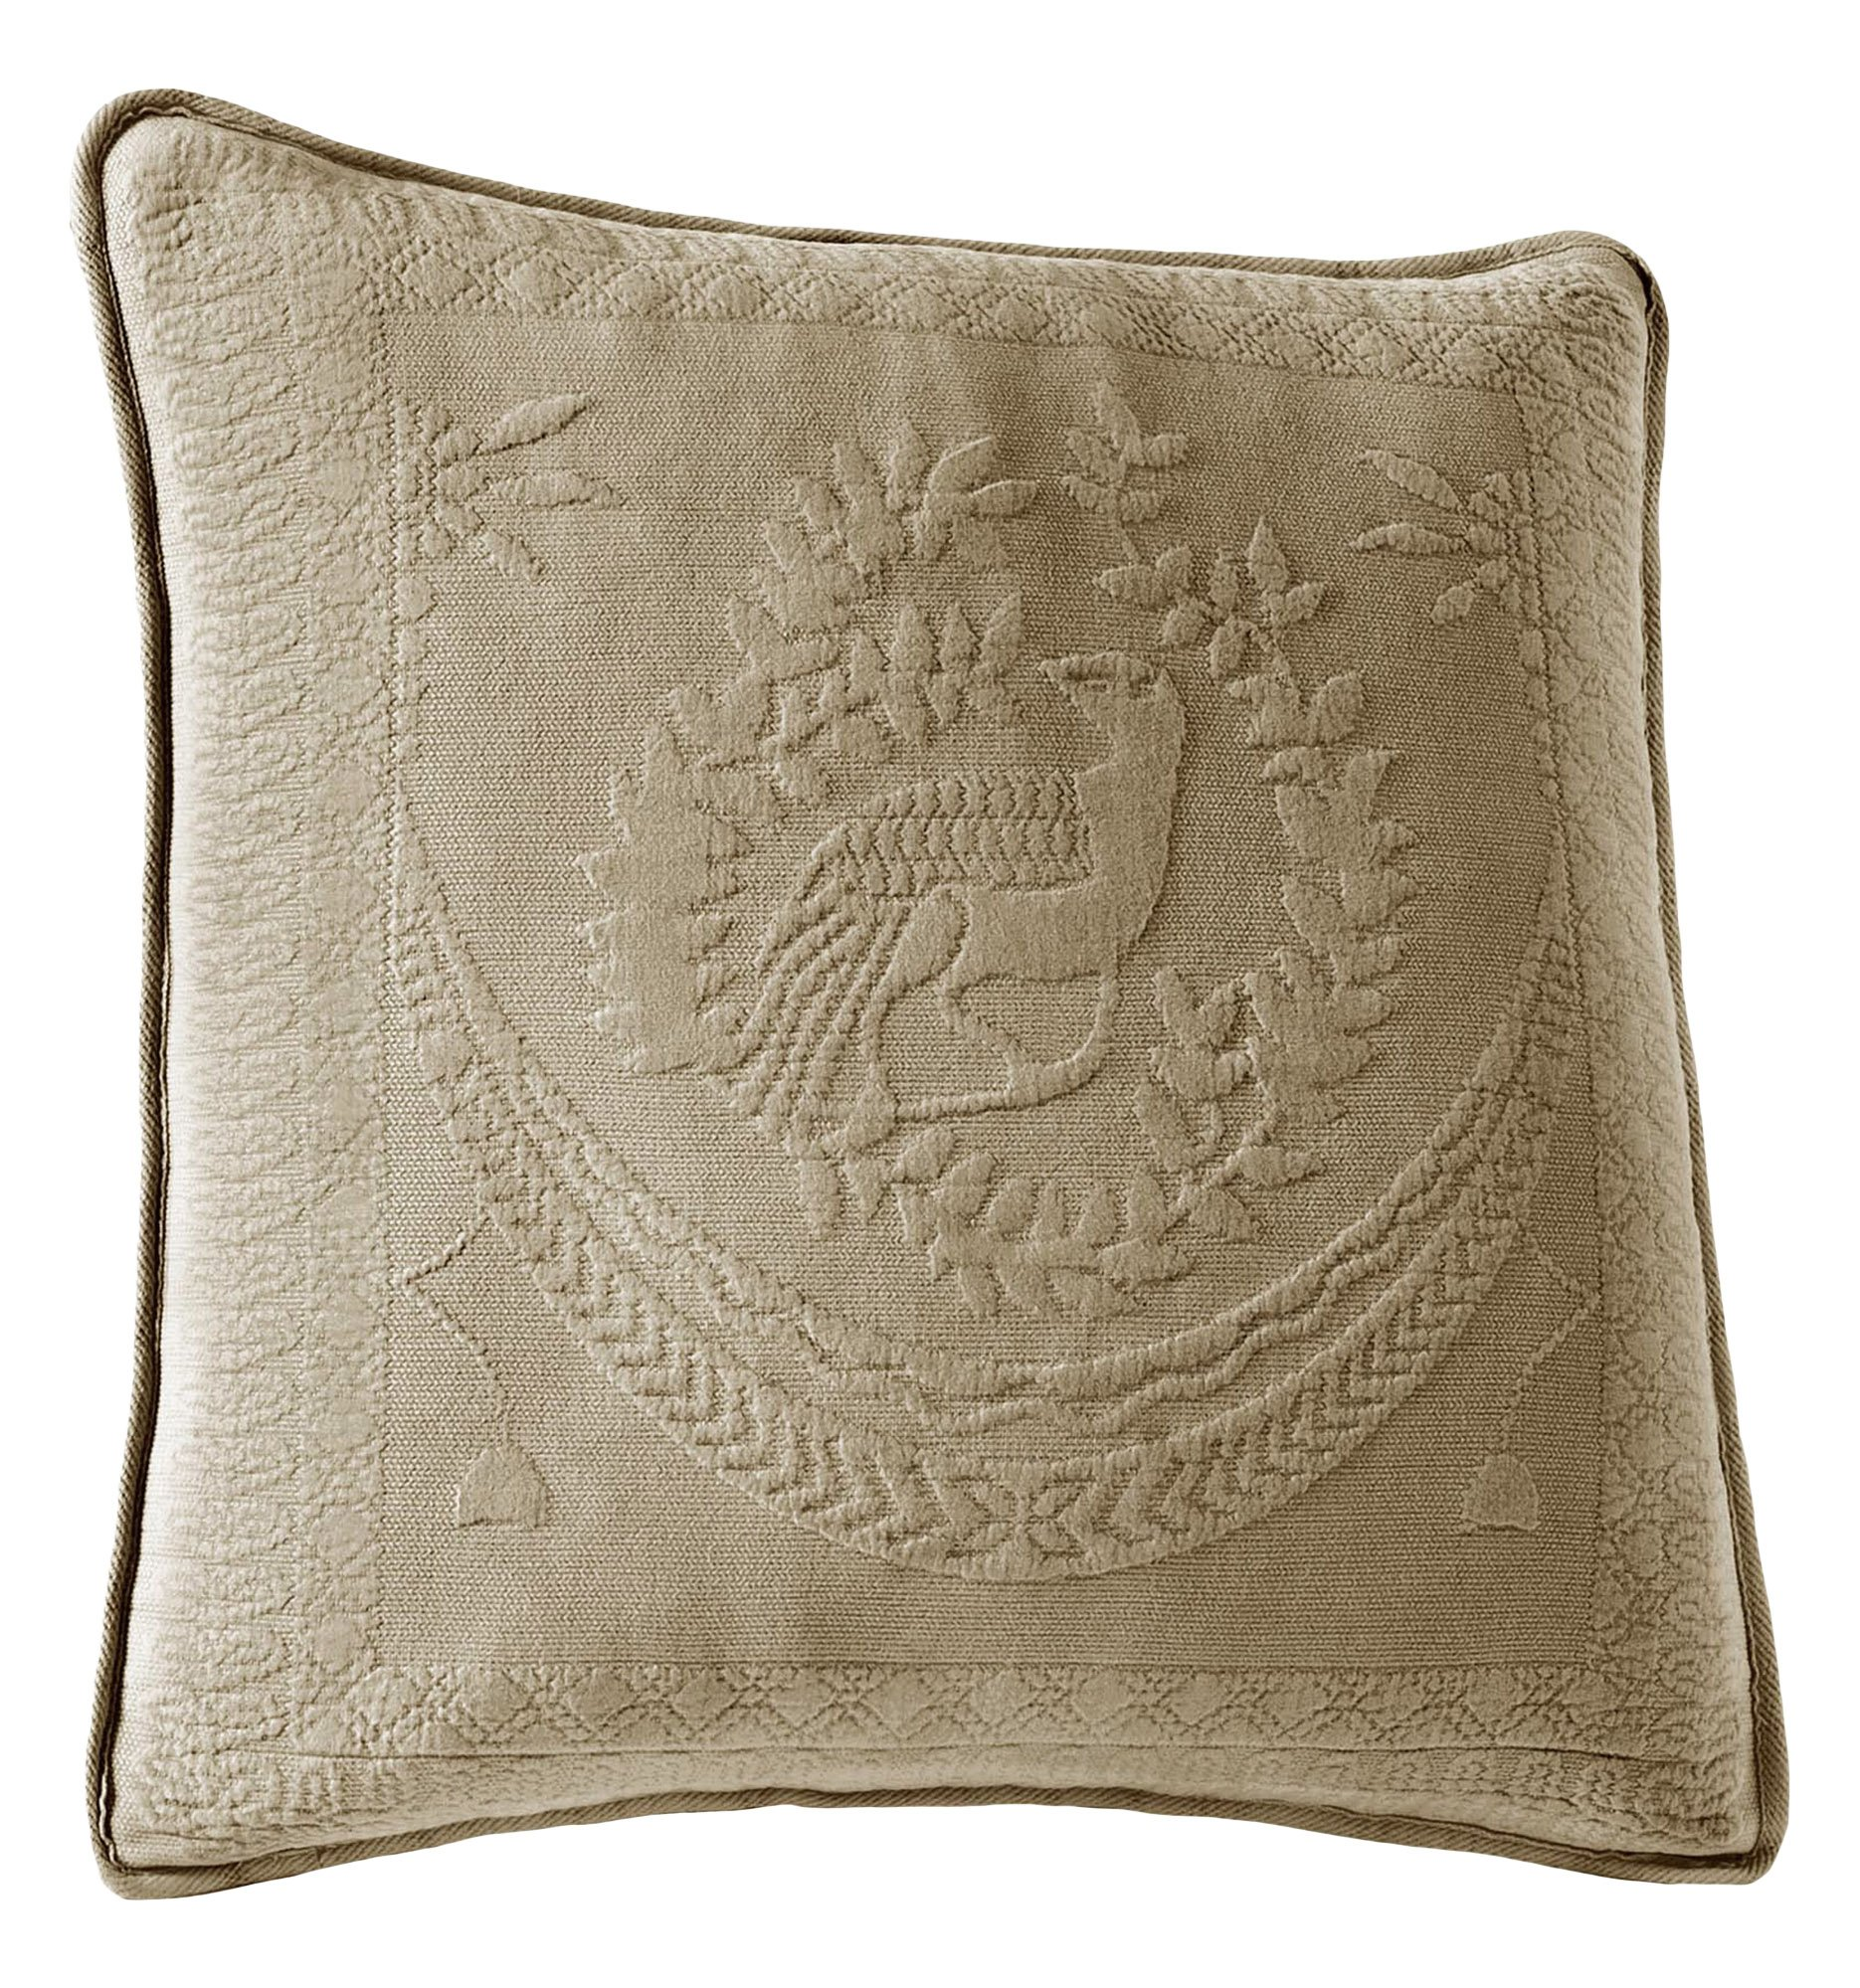 Historic Charleston 13995020X020SAG King Charles Matelasse 20-Inch by 20-Inch Decorative Pillow, Sage